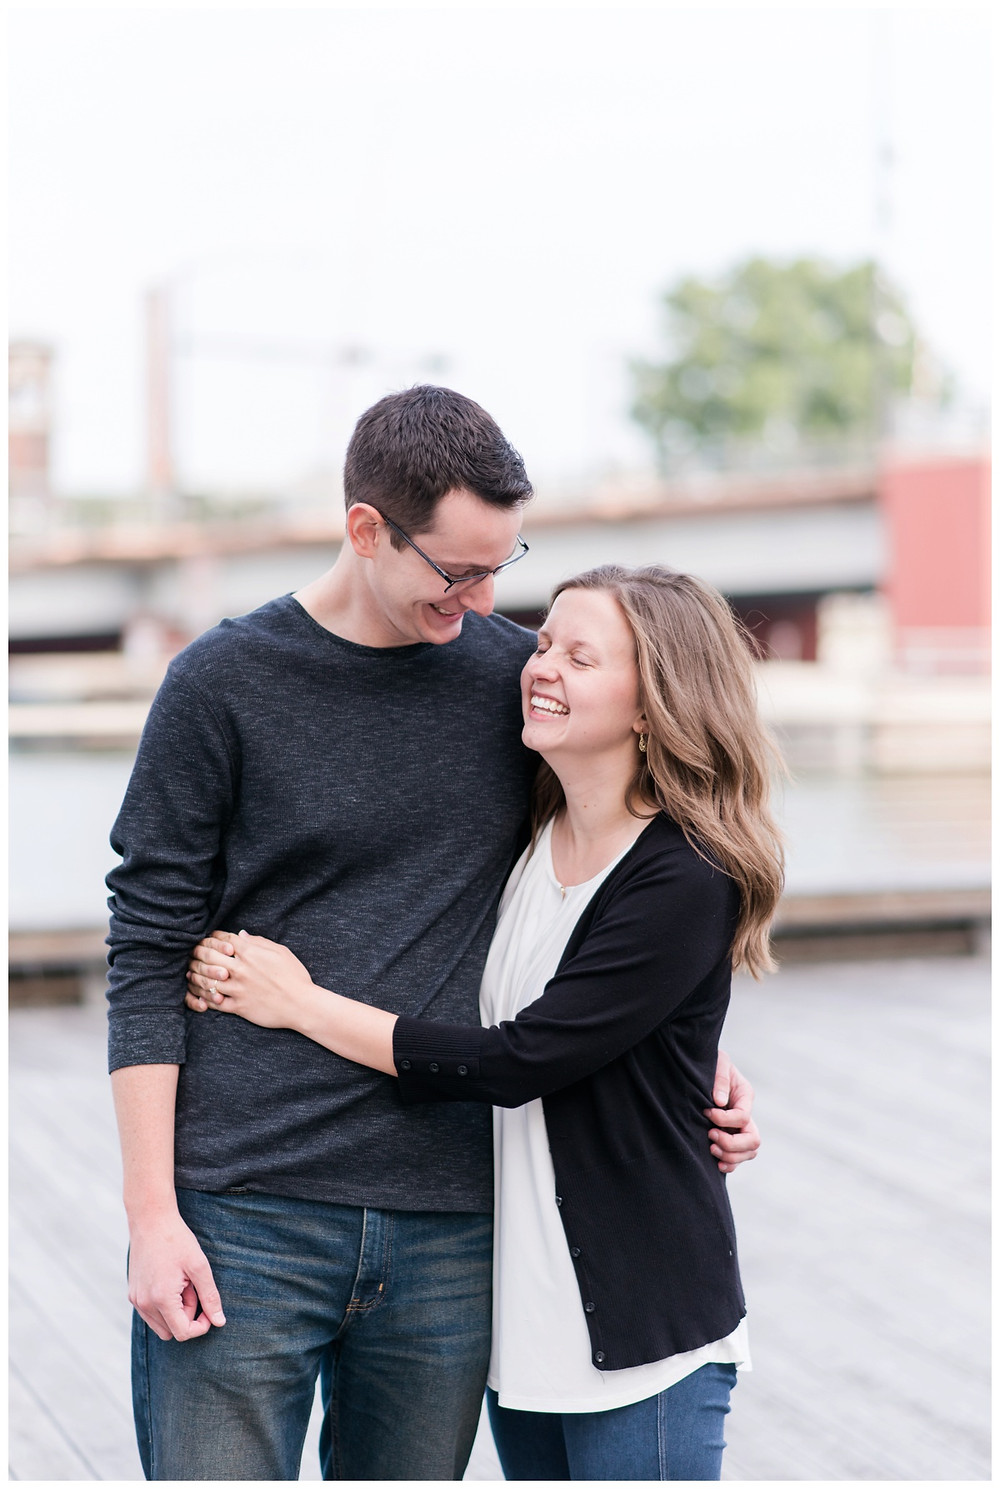 engaged-couple-arms-around-each-other-laughing-at-downtown-green-bay-engagement-session-by-appleton-wedding-photographer-kyra-rane-photography